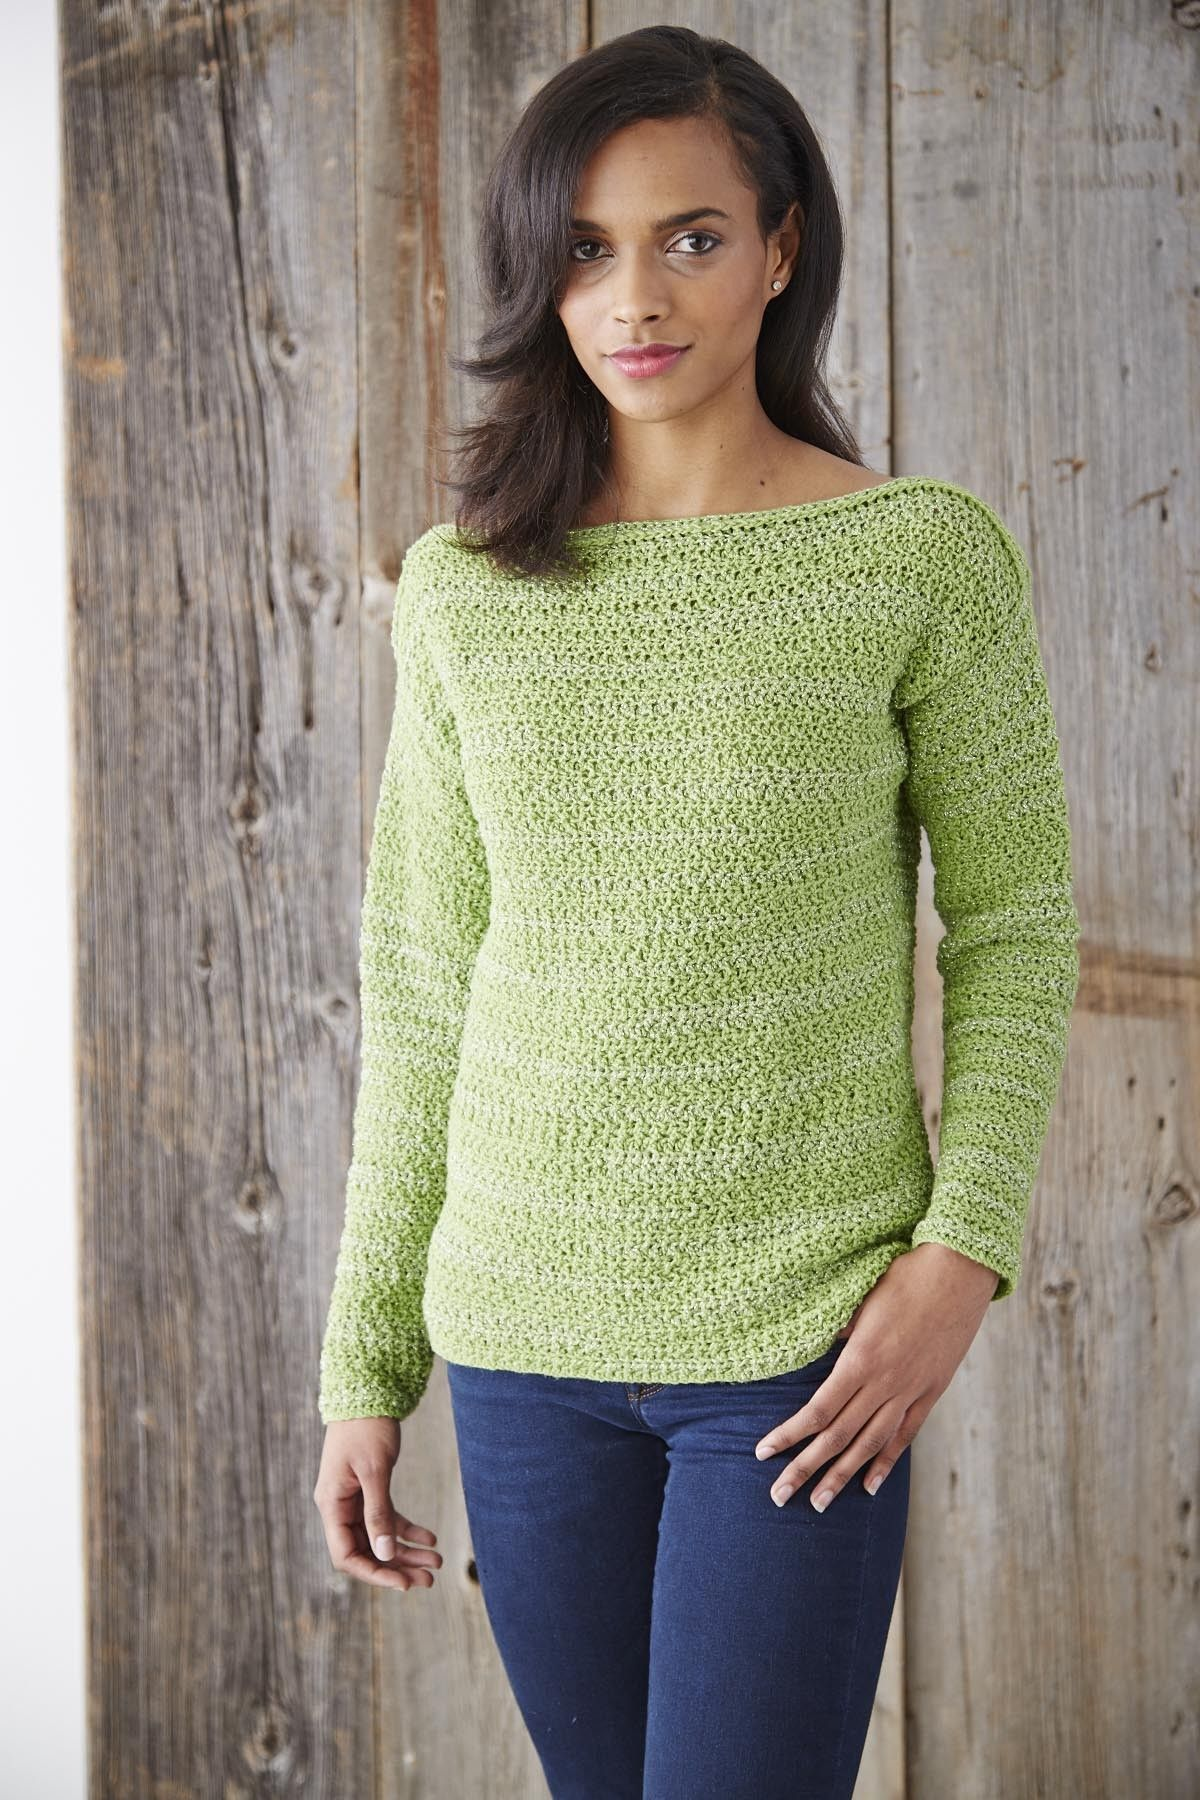 Boat Neck Pullover Sweater | Pinterest | Boat neck, Pullover and Boating